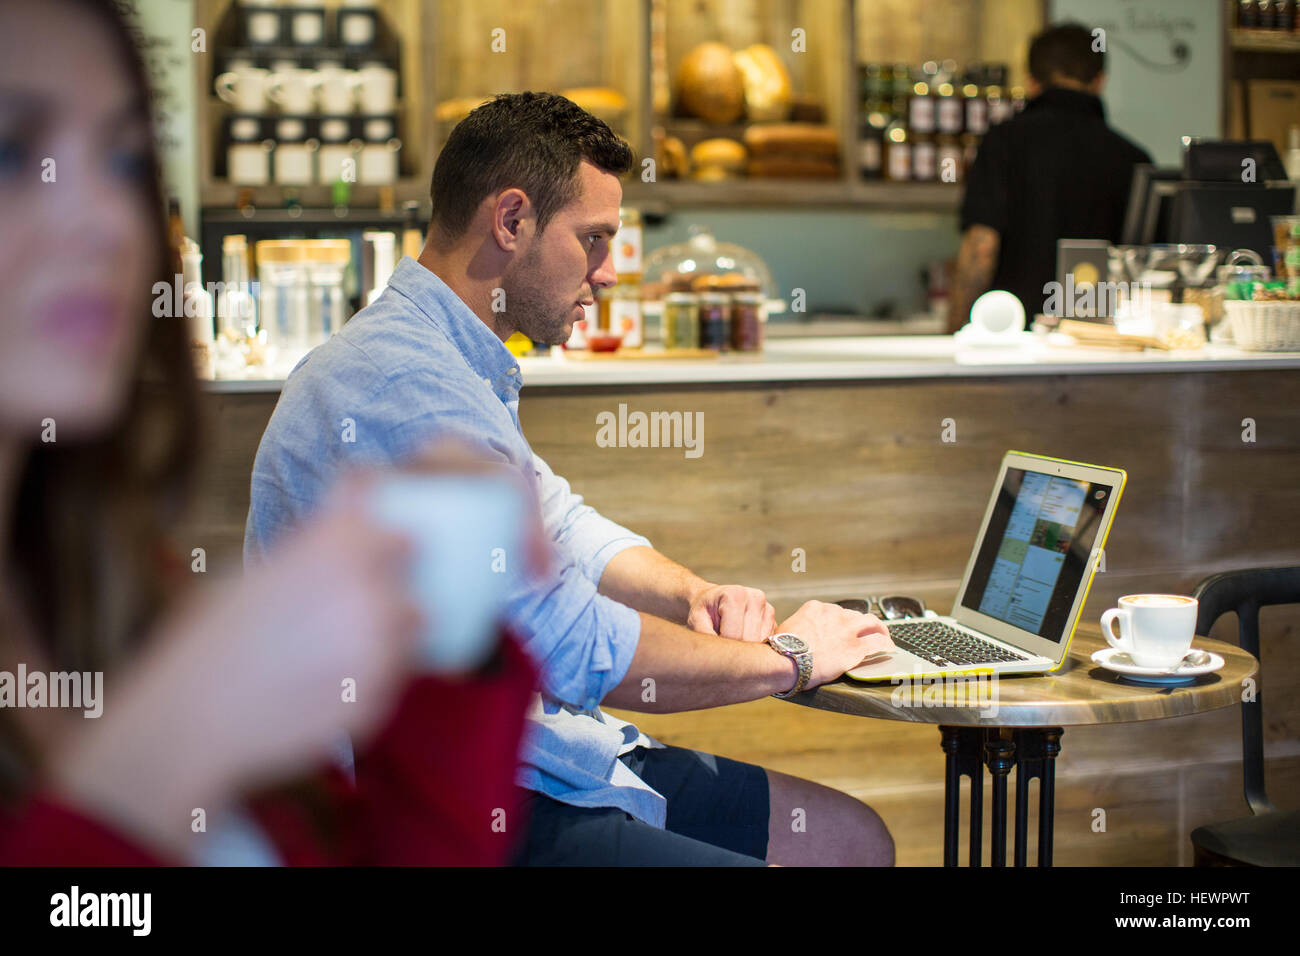 Man sitting in cafe lecture coffre Photo Stock